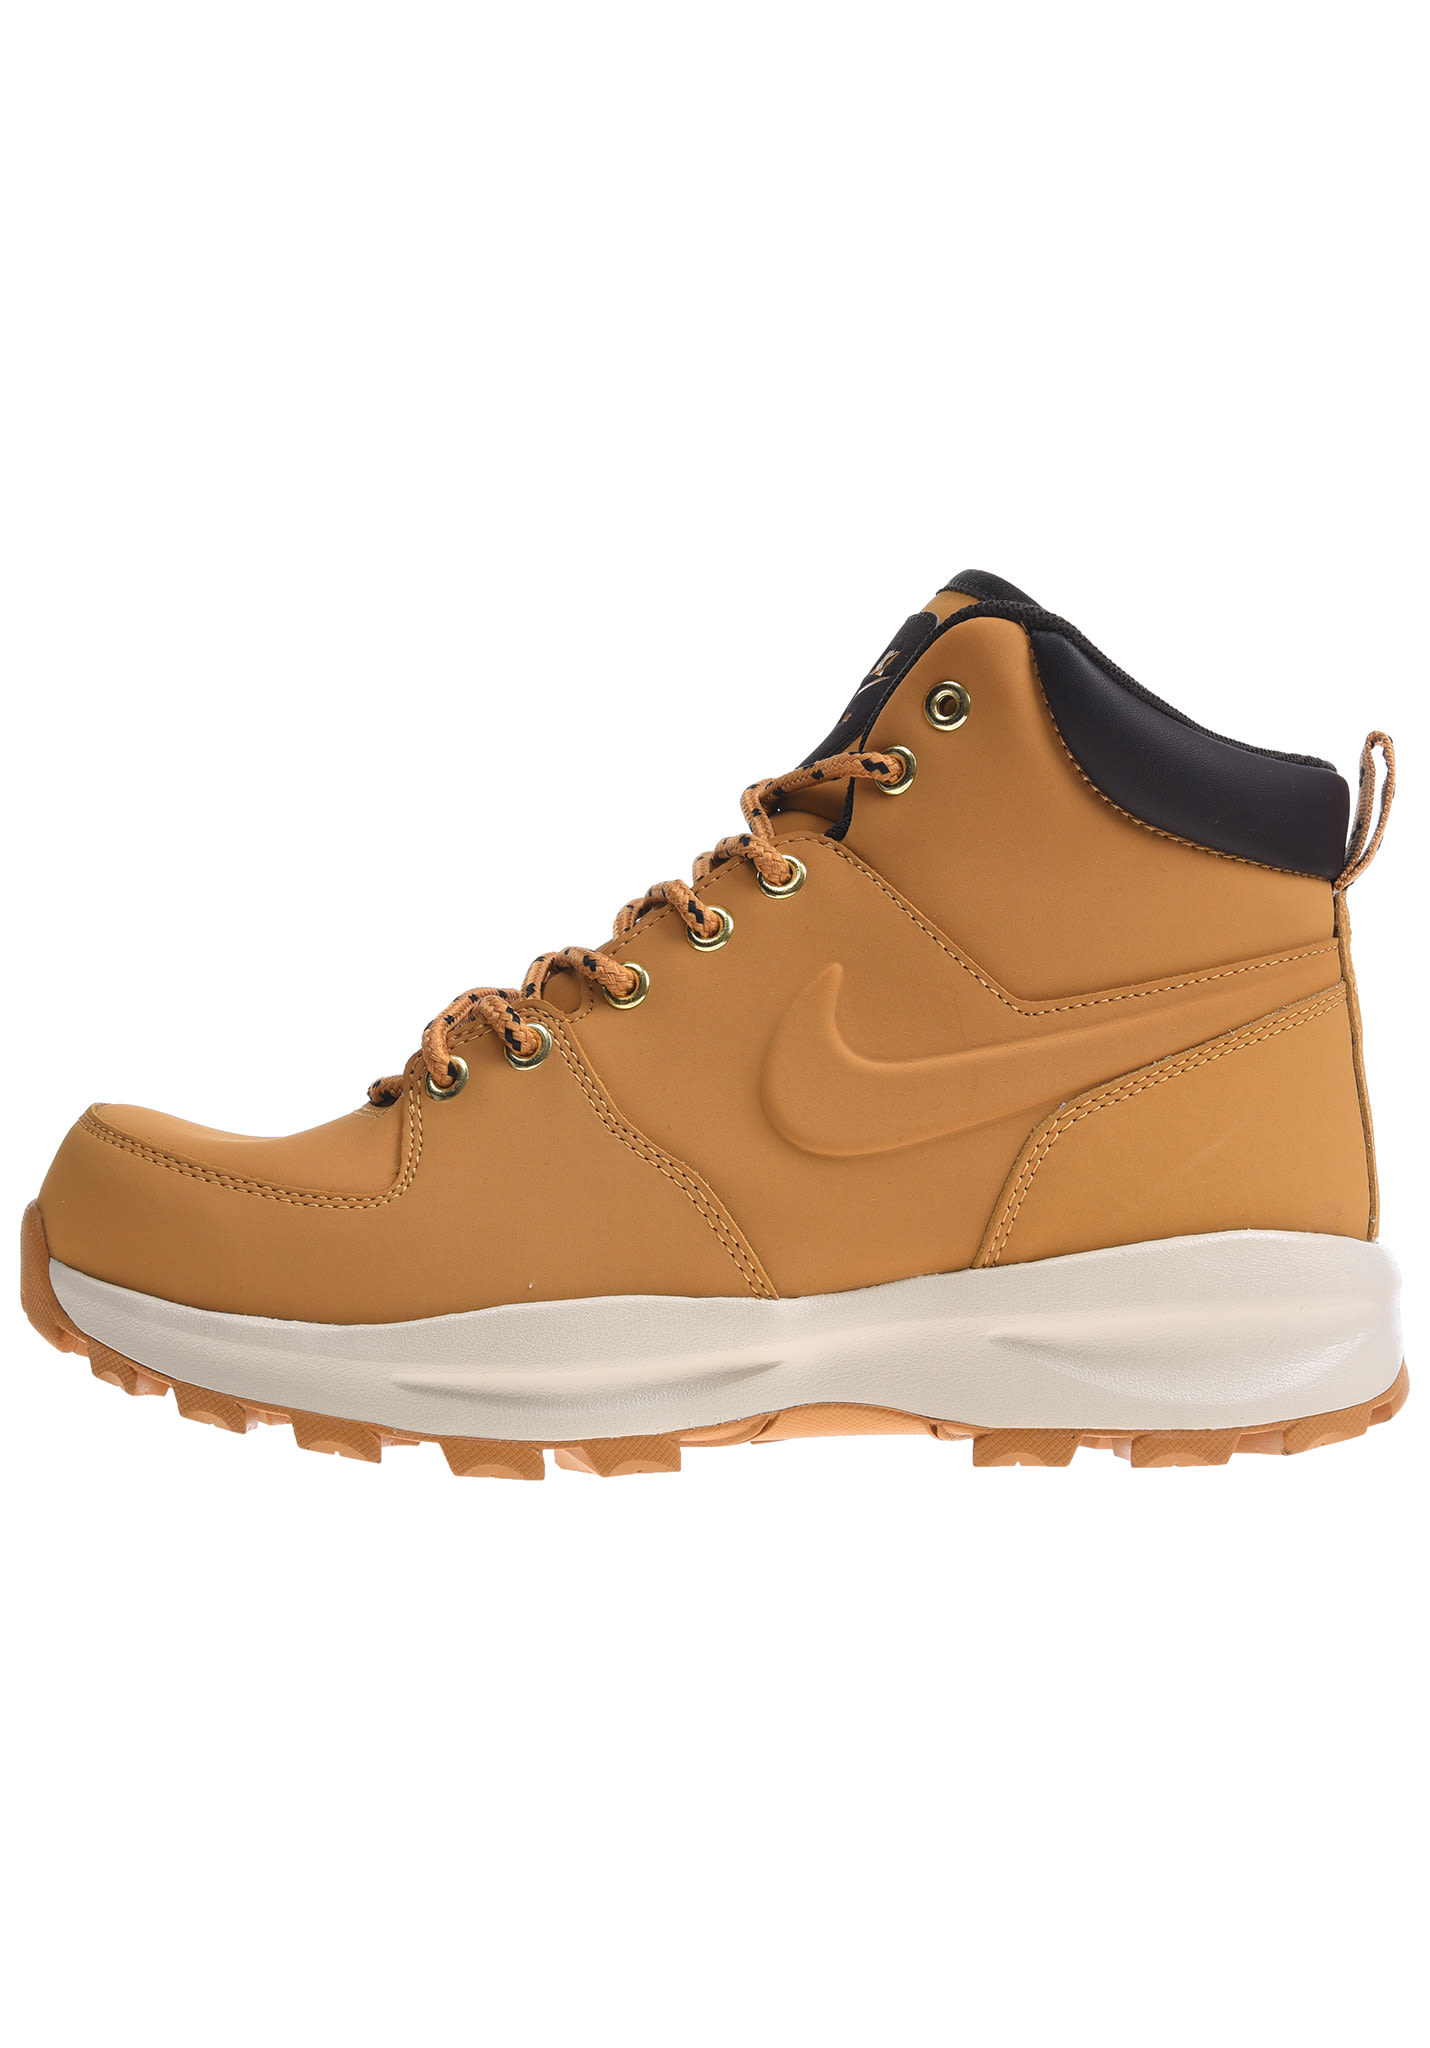 8eed33d7 NIKE SPORTSWEAR Manoa Lthr - Botines para Hombres - Marrón - Planet Sports